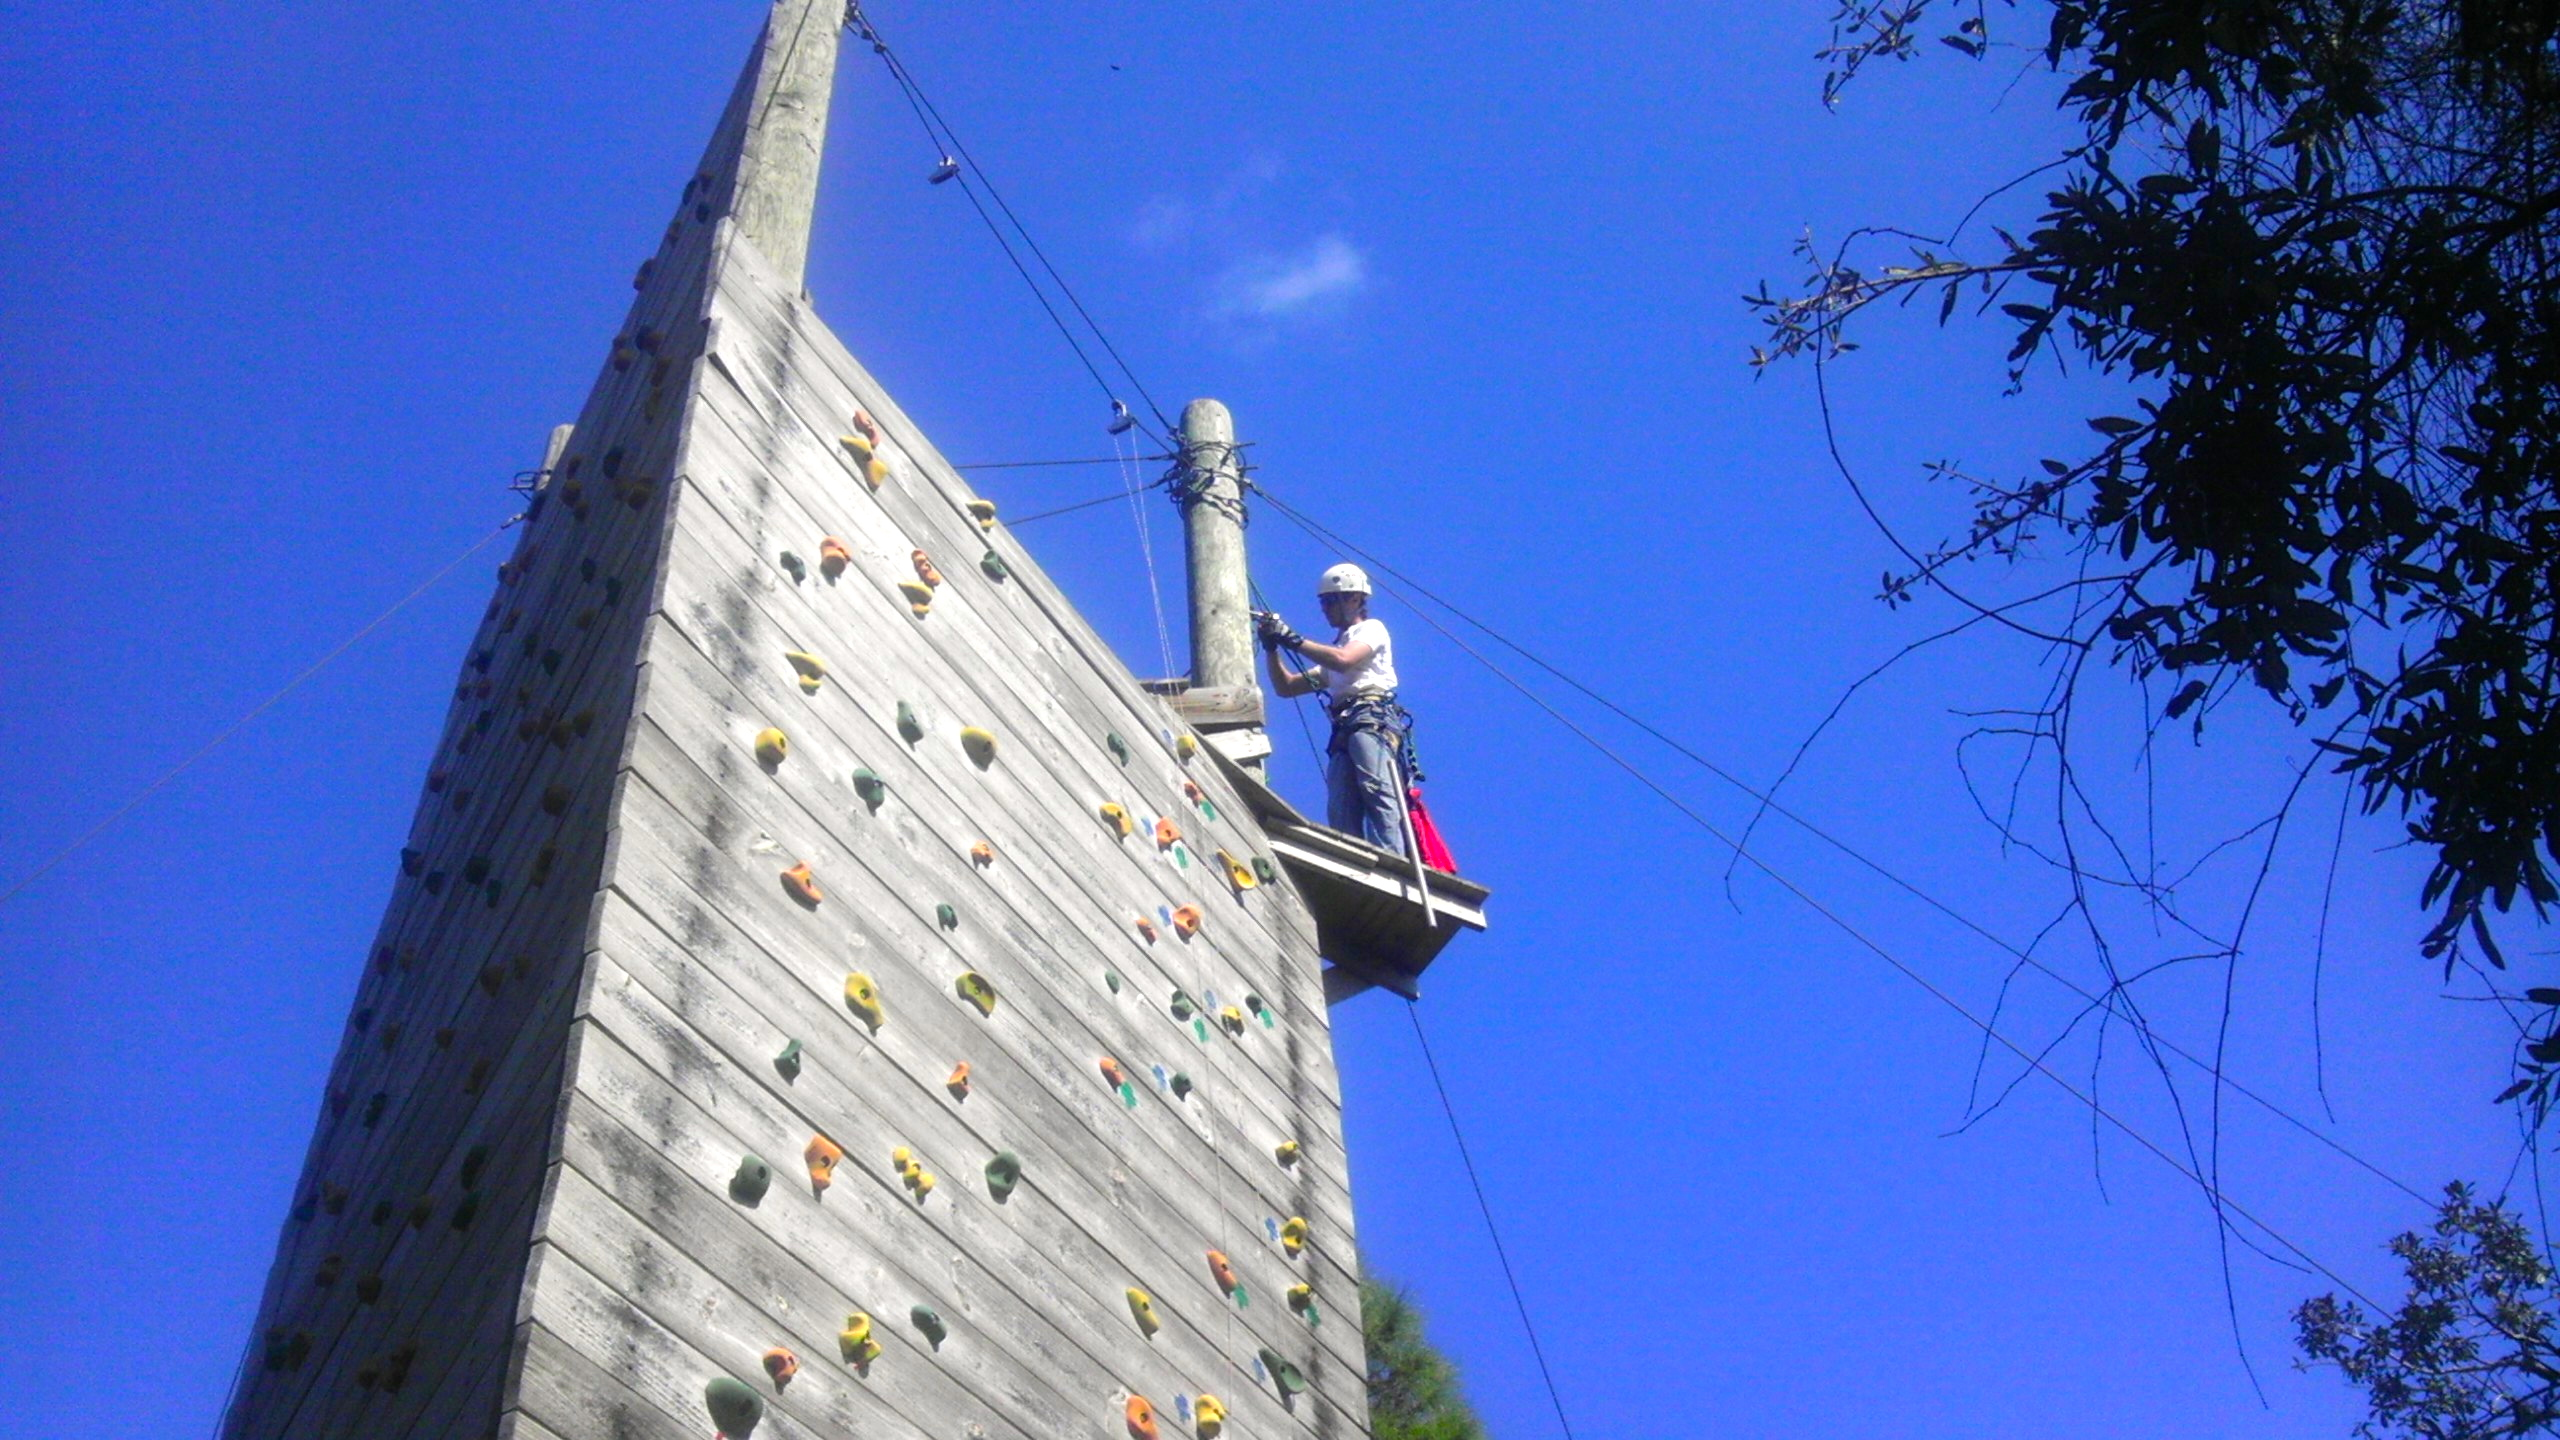 Inspector working on a Climbing Wall. Inspection practices and other Challenge Course Information can be found within our blog.